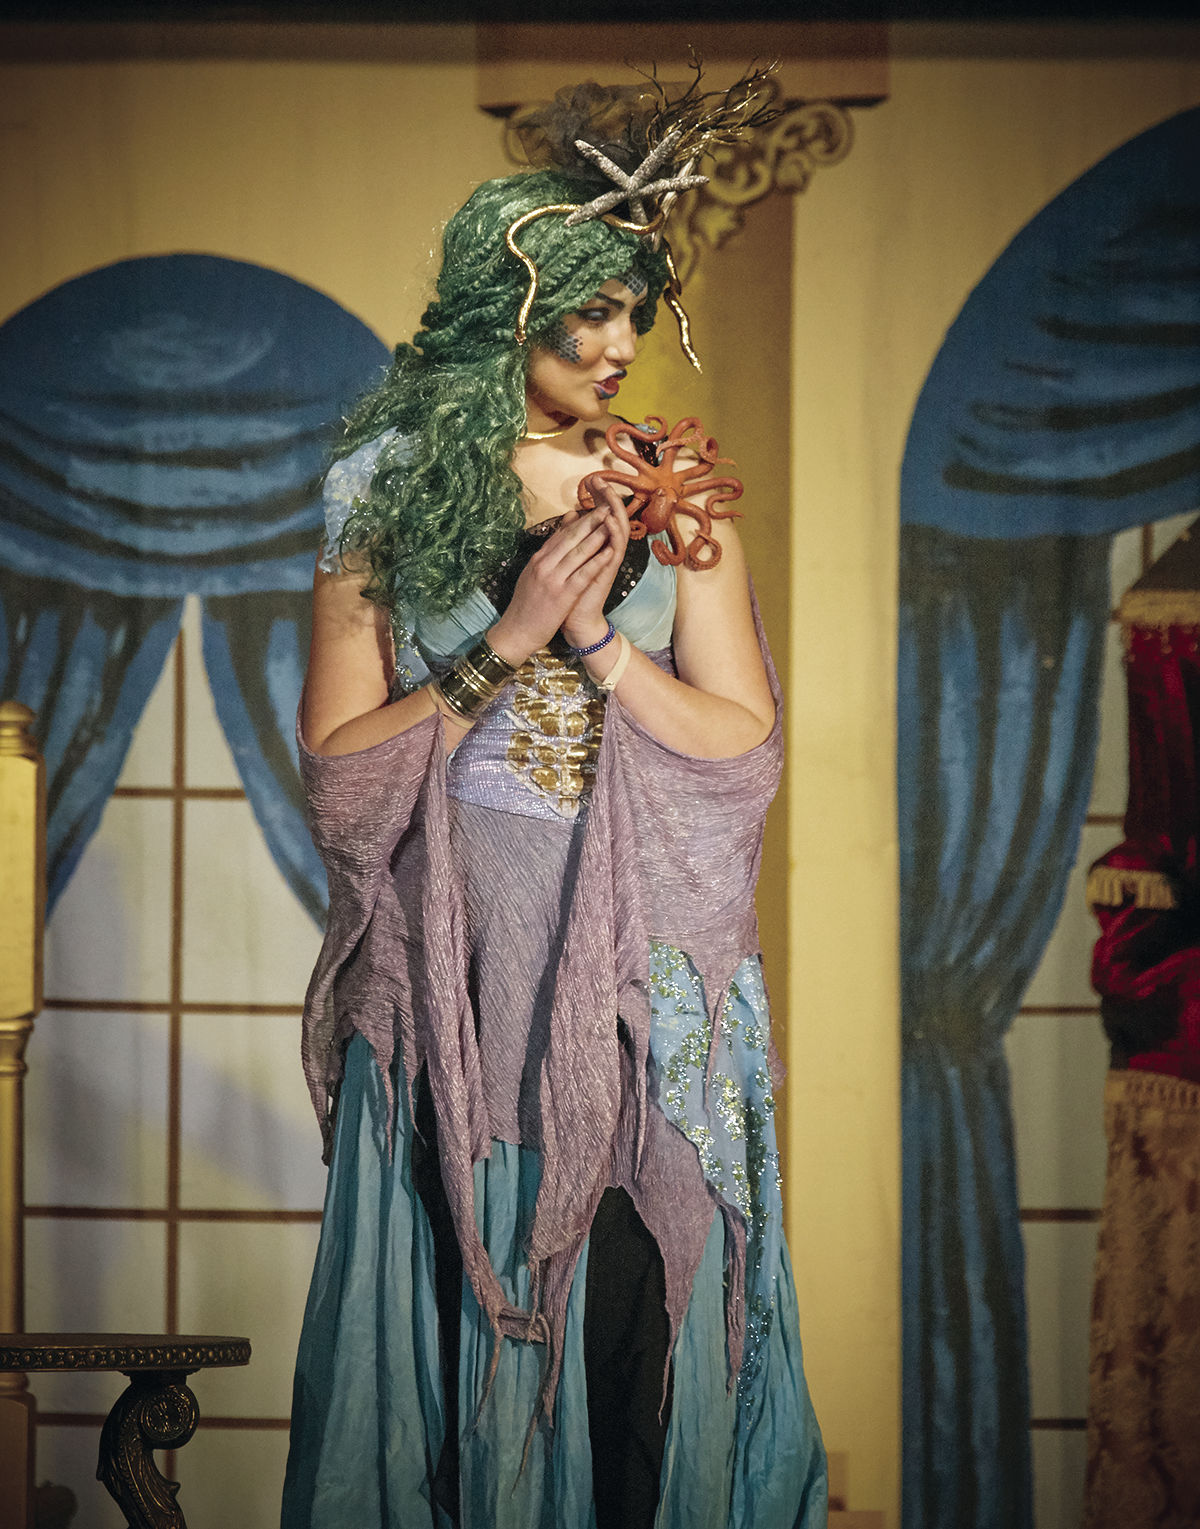 'The Little Mermaid' makes a splash at Holy Family Academy in St. Louis Park - 8